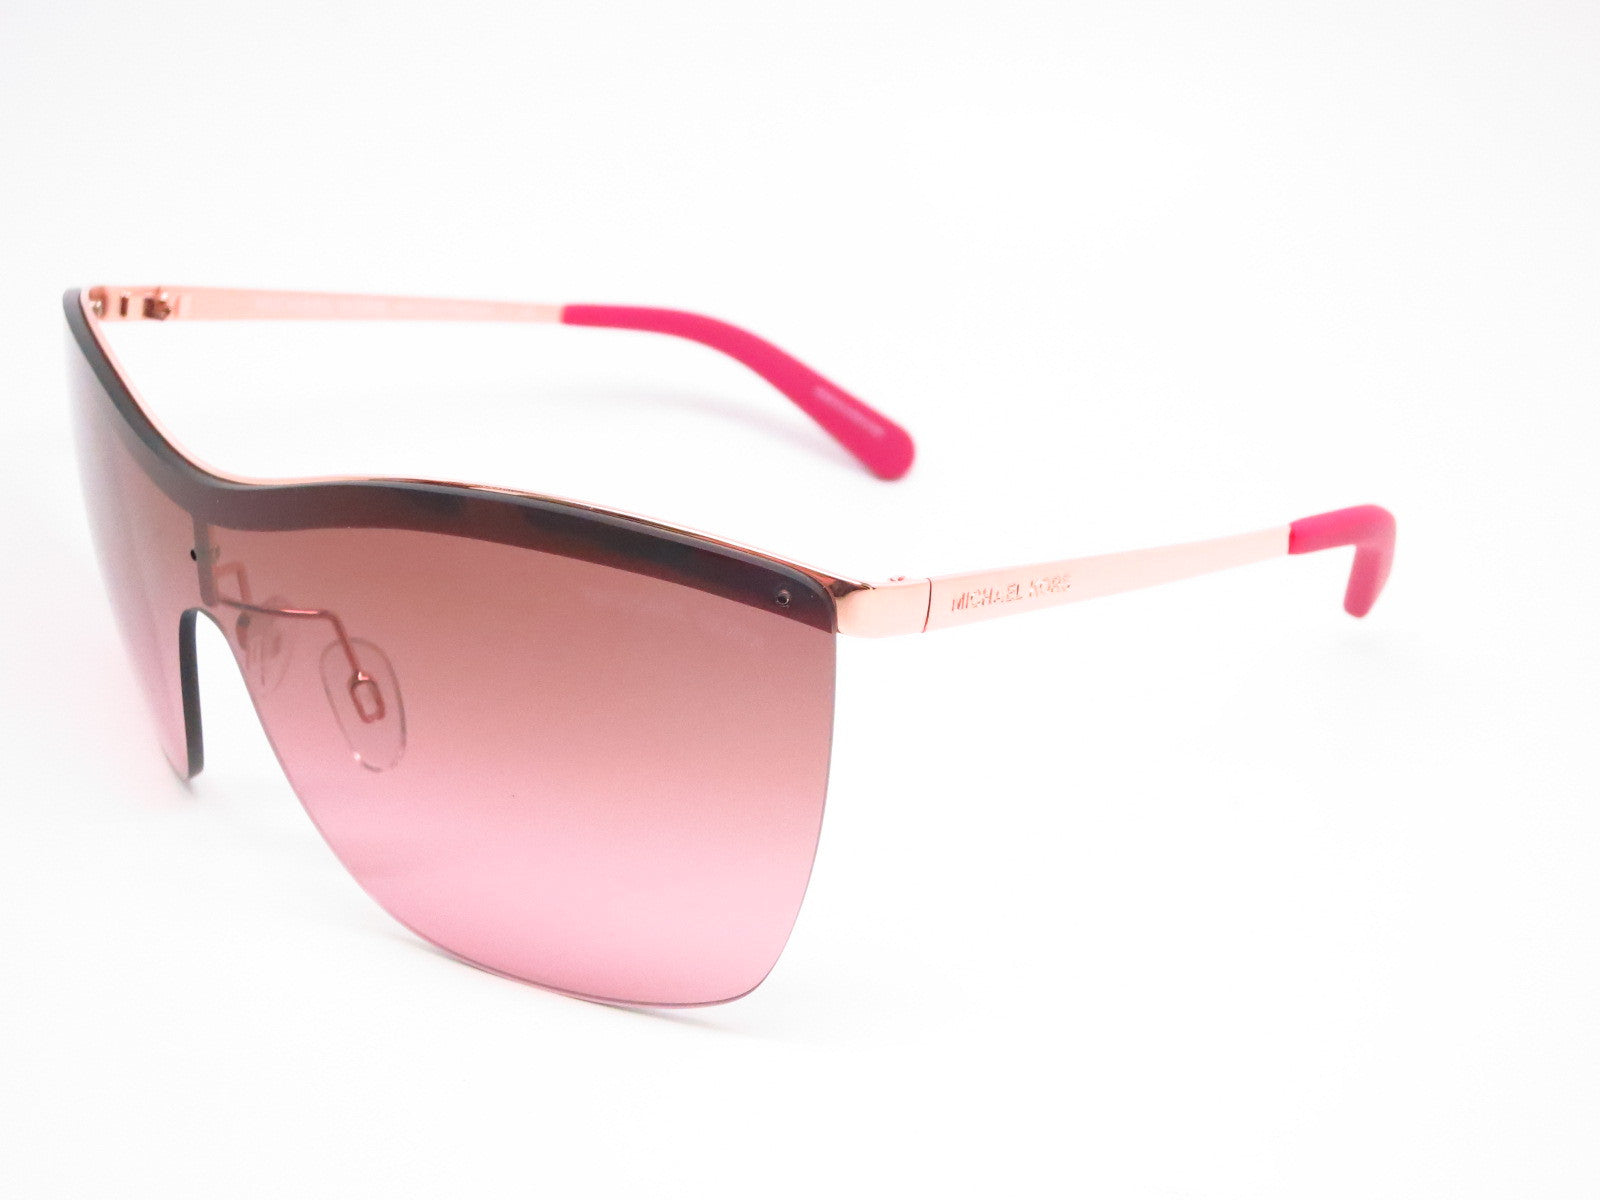 bfbc688731 Michael Kors MK 5005 Paphos 1003 13 Rose Gold Sunglasses - Eye Heart Shades  -